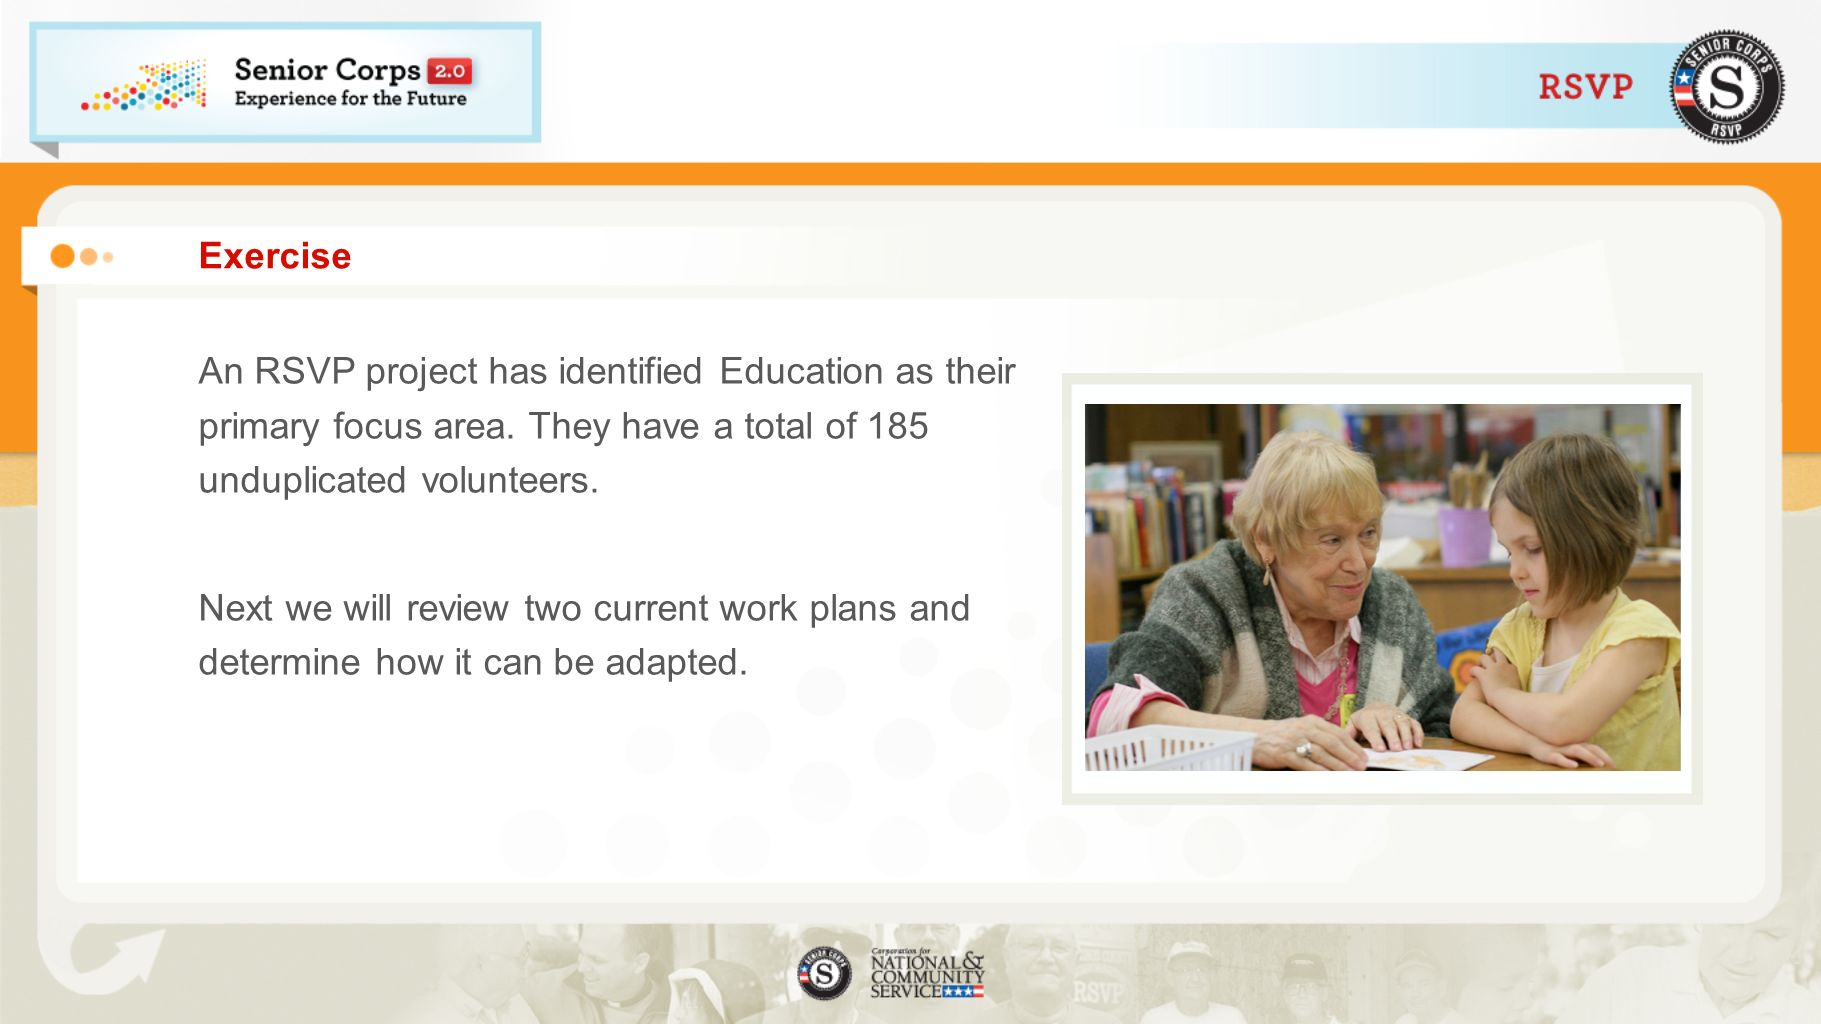 Exercise An RSVP project has identified Education as their primary focus area. They have a total of 185 unduplicated volunteers.